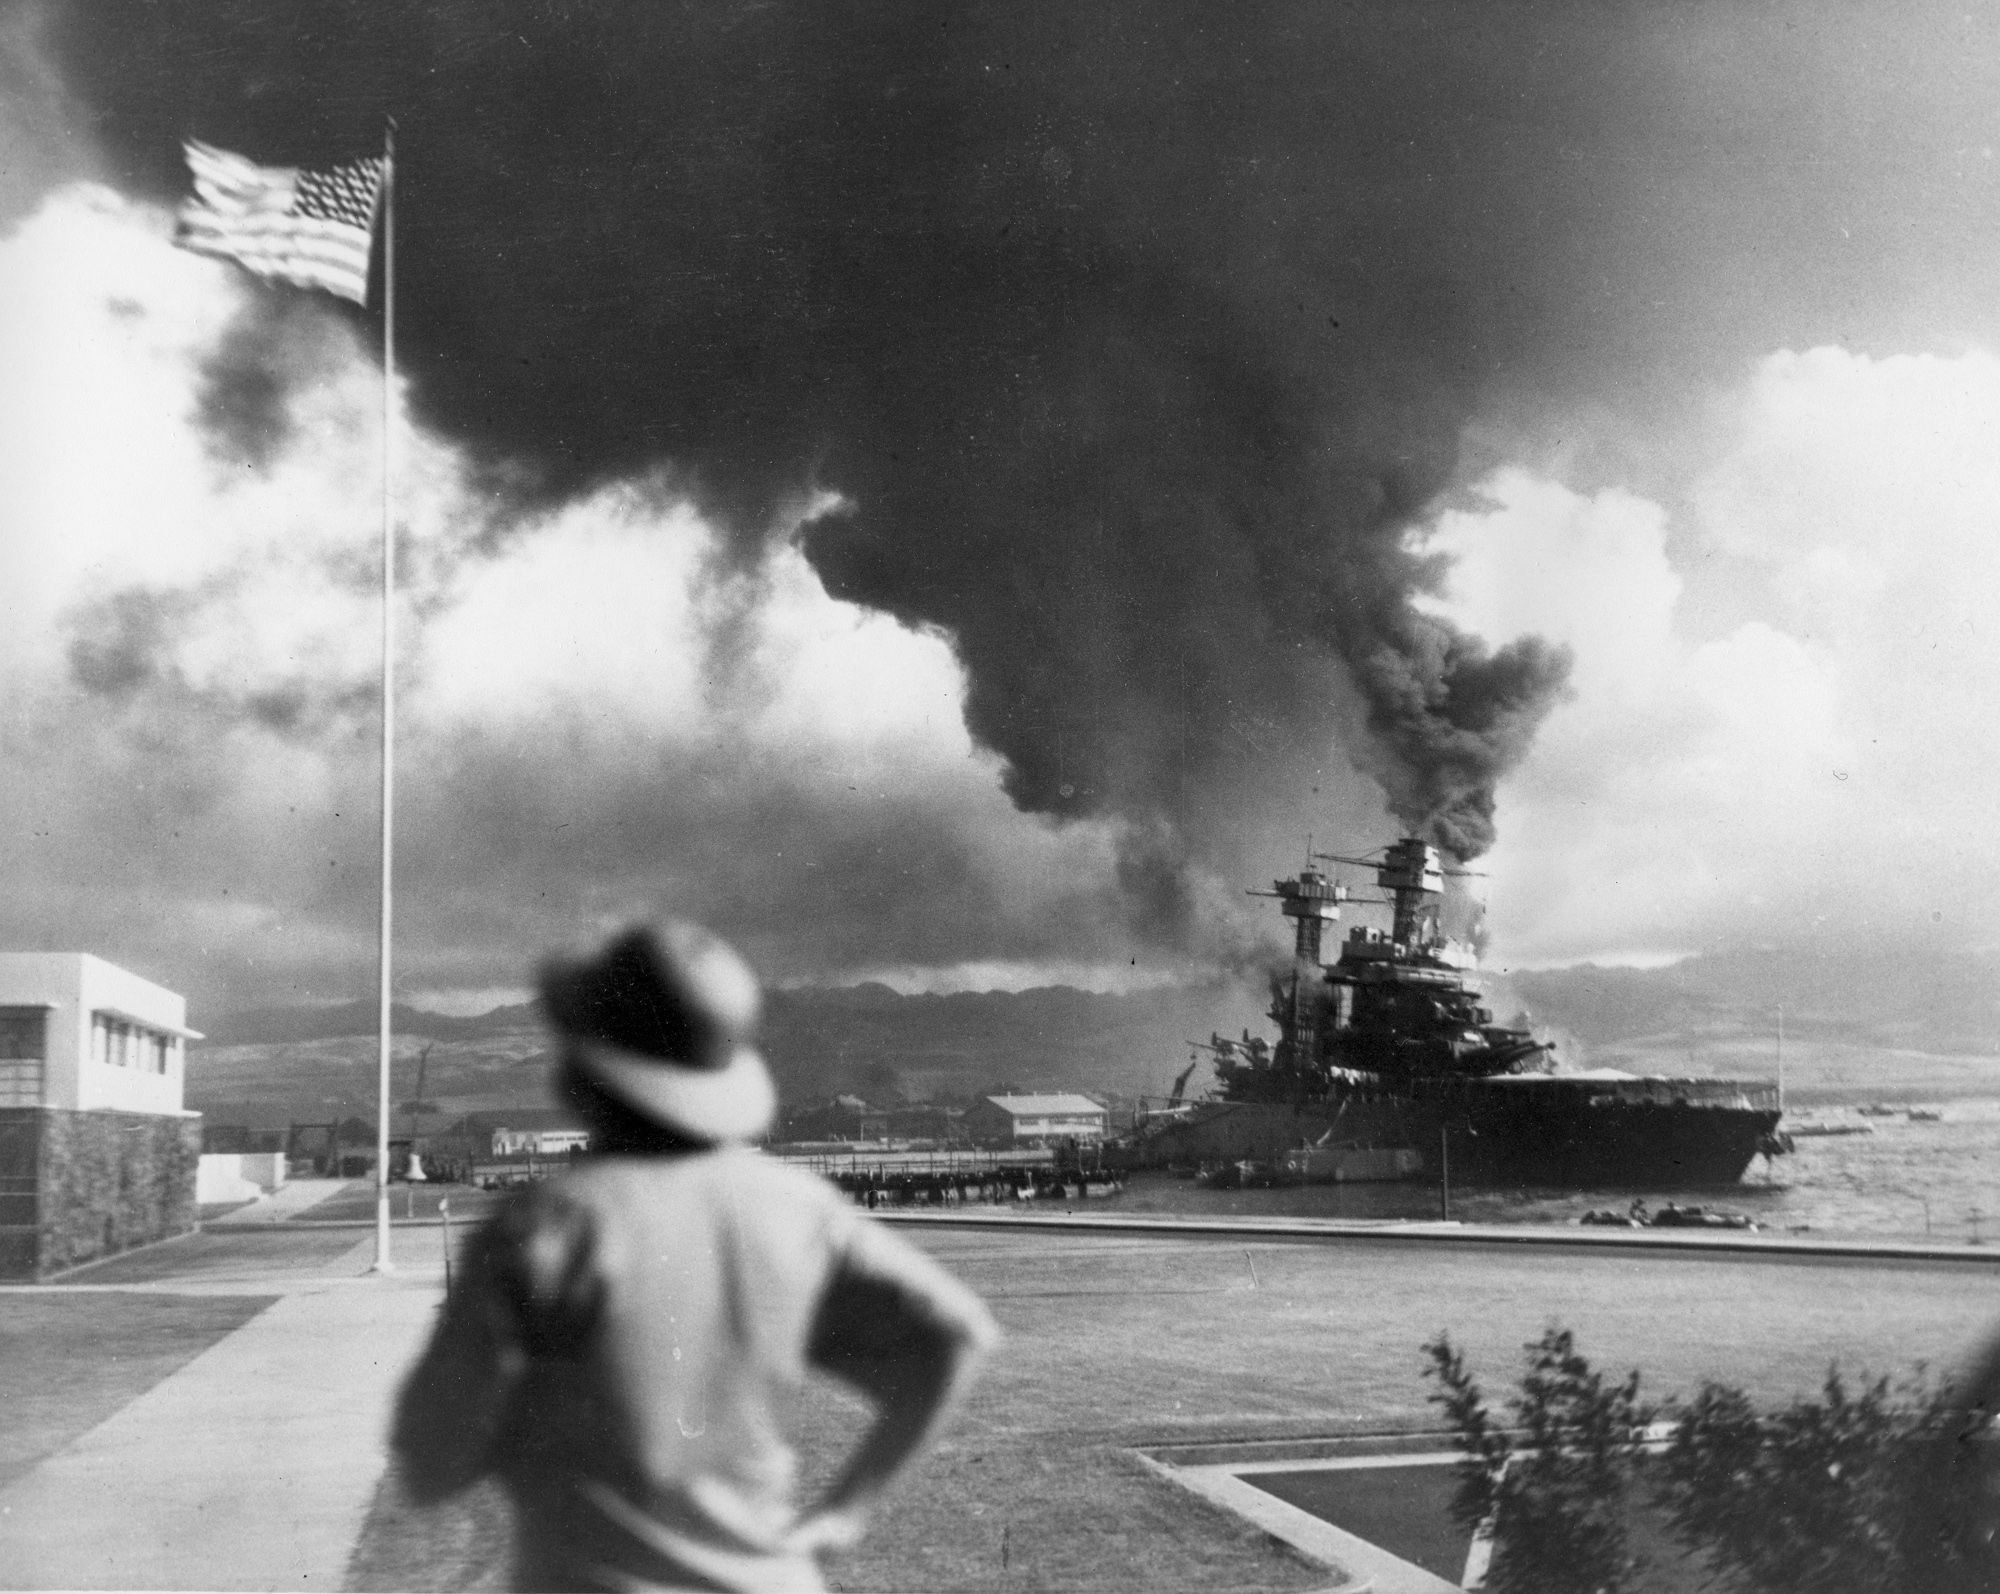 pearl harbor from infamy to greatness